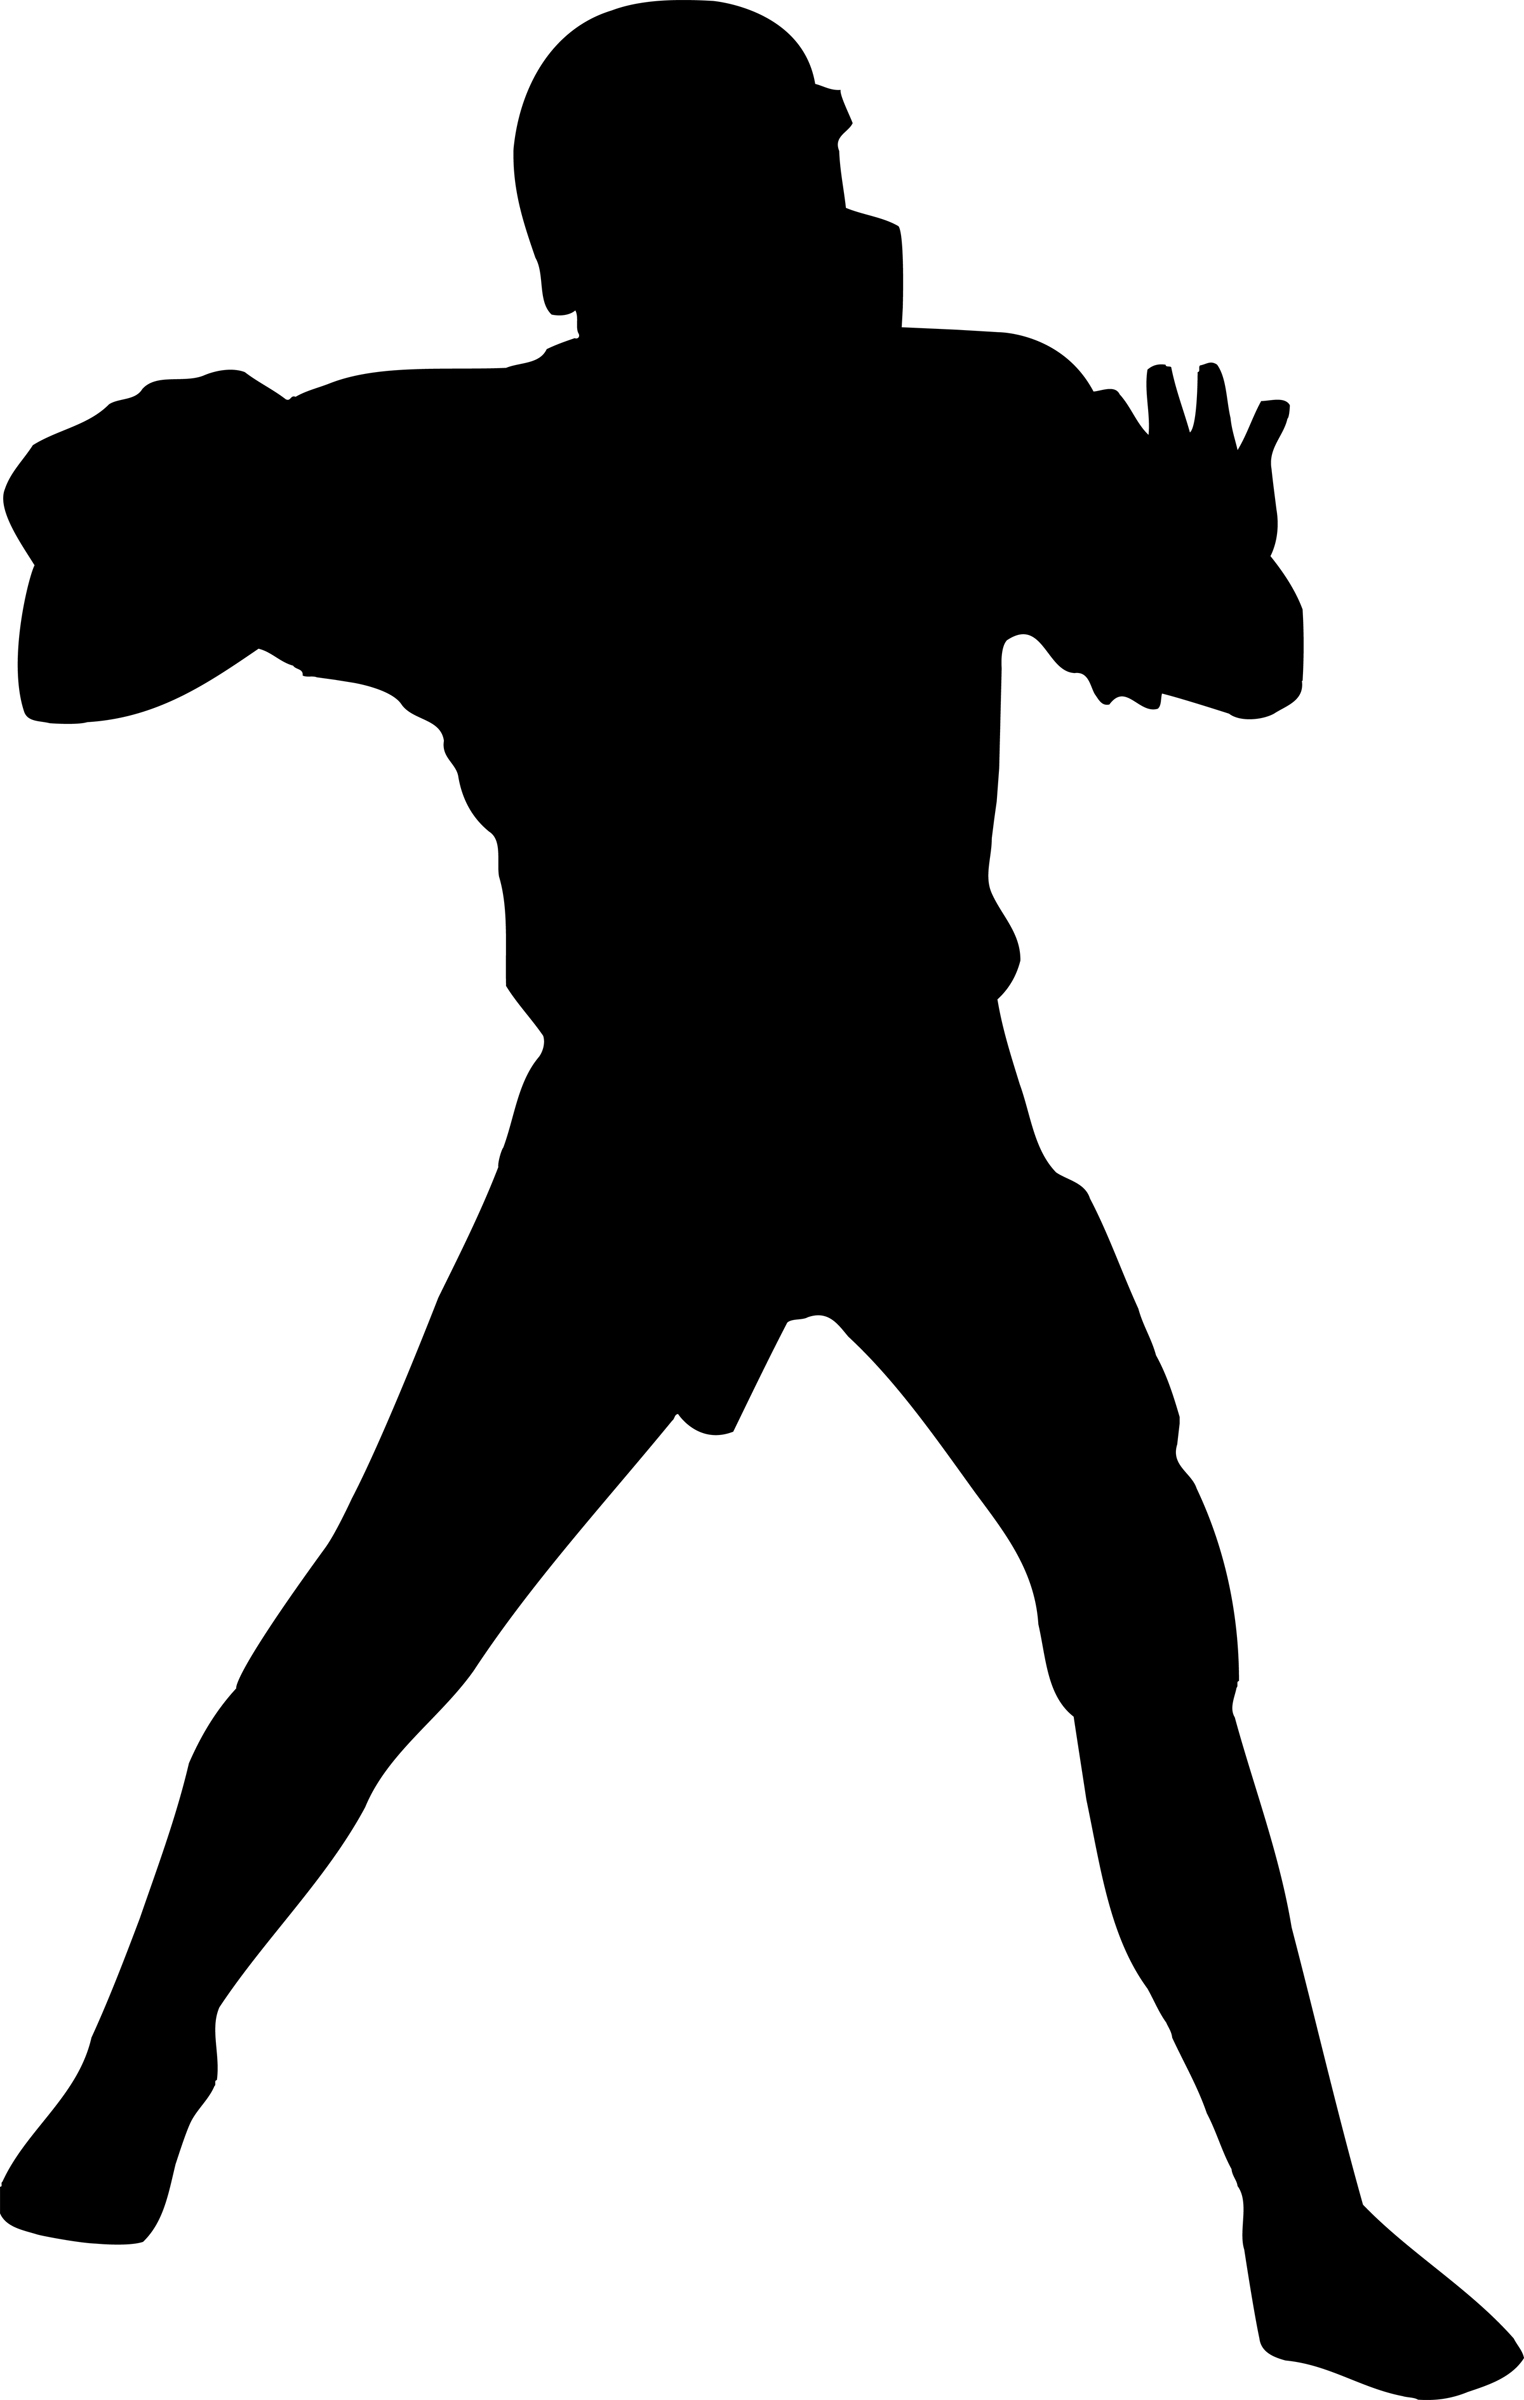 football player silhouette clip art pictures to pin on Lineman Coloring Pages Lineman Stickers Decals